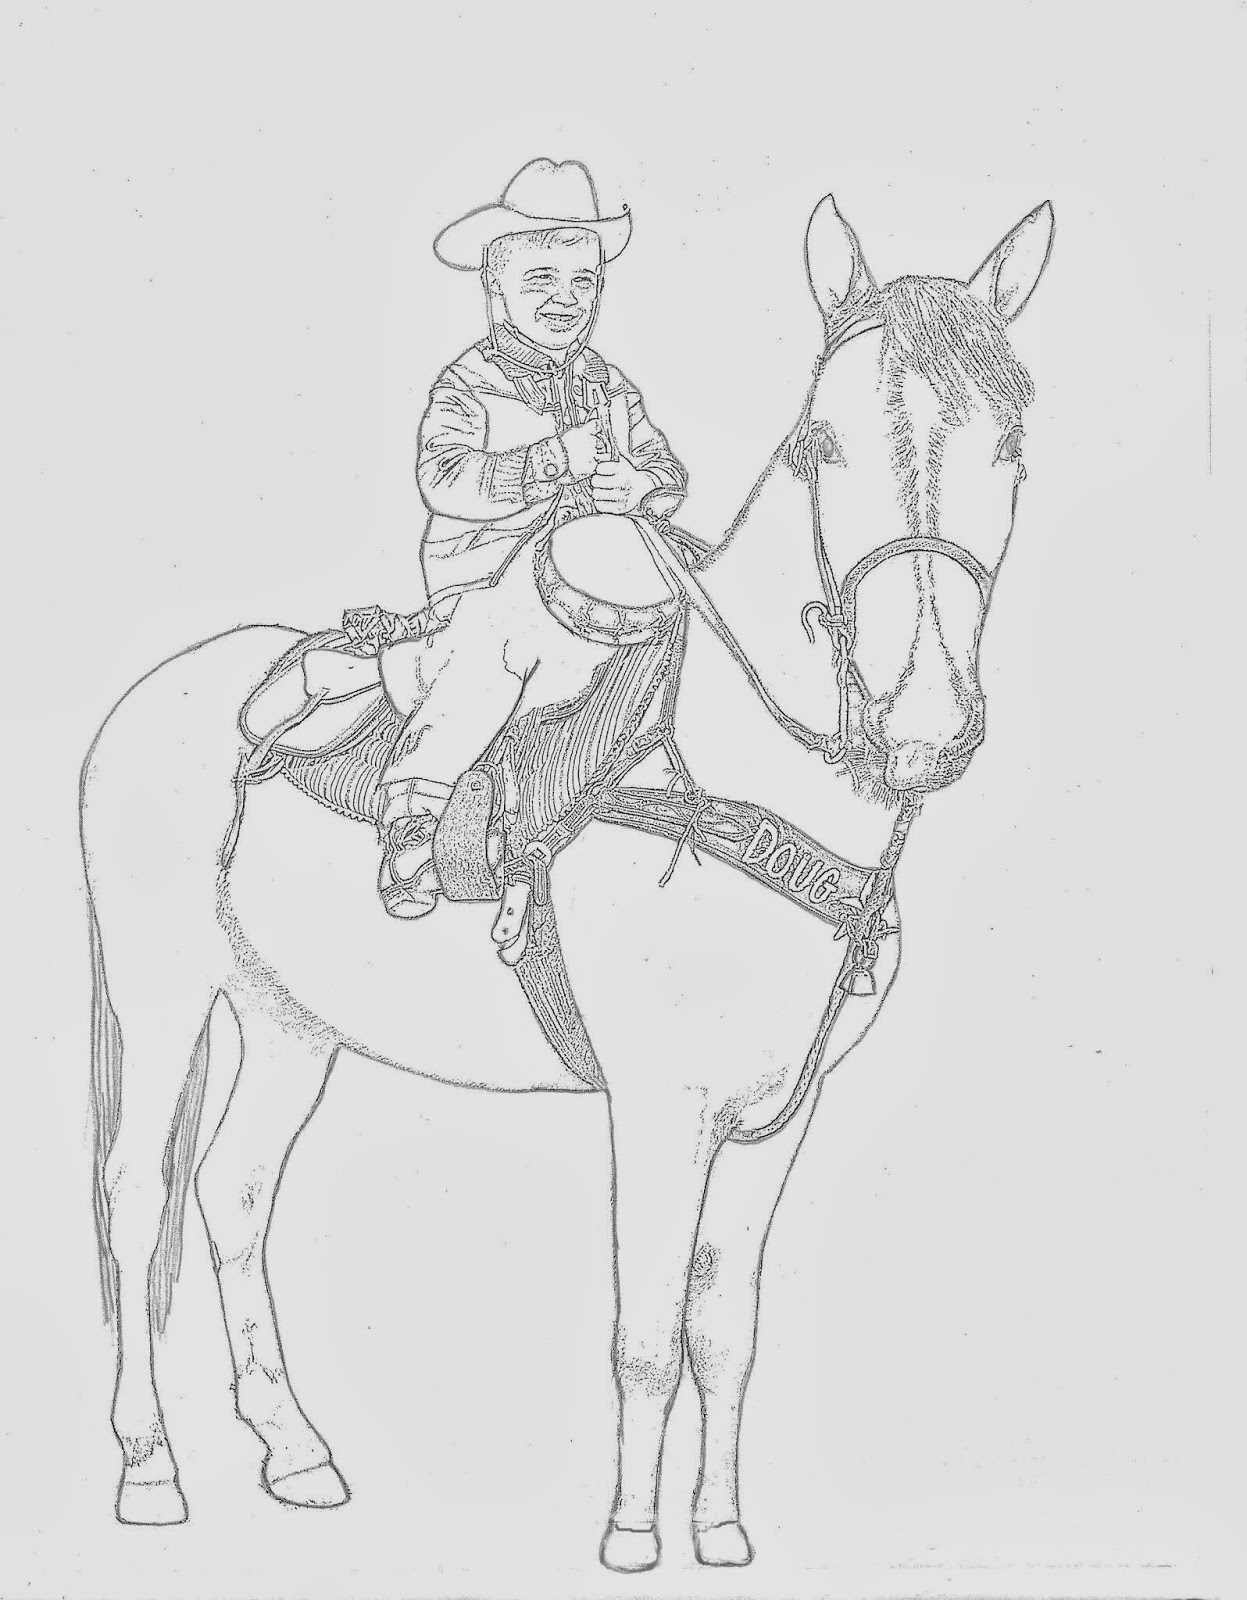 Western Coloring Pages Cowboy Doug On Horse Coloring Page By Dancing Cowgirl Design